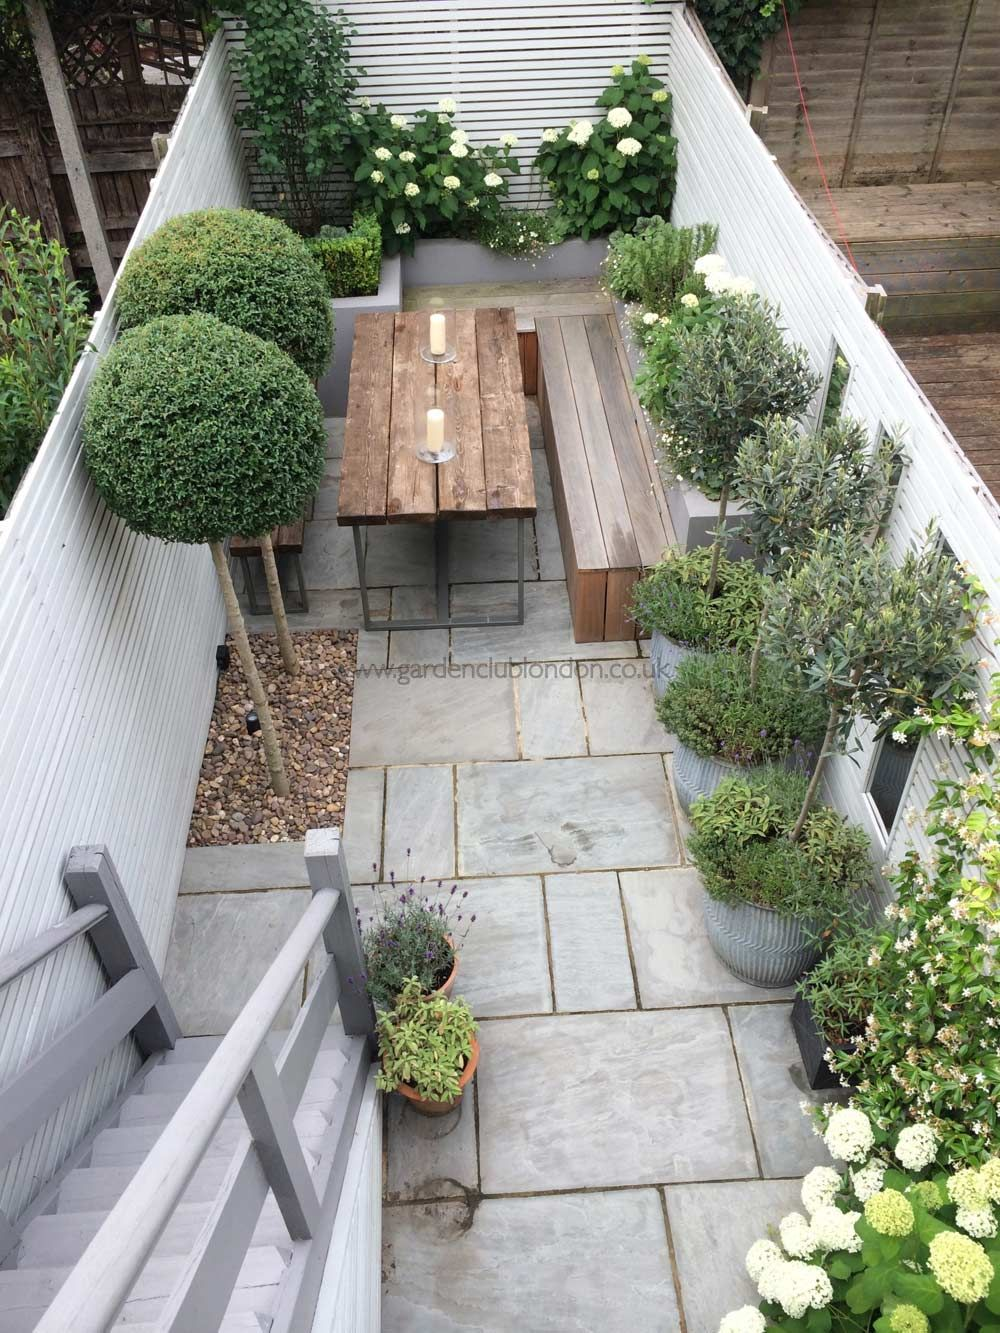 40 Garden Ideas for a Small Backyard - BigDIYIdeas.com | More ...